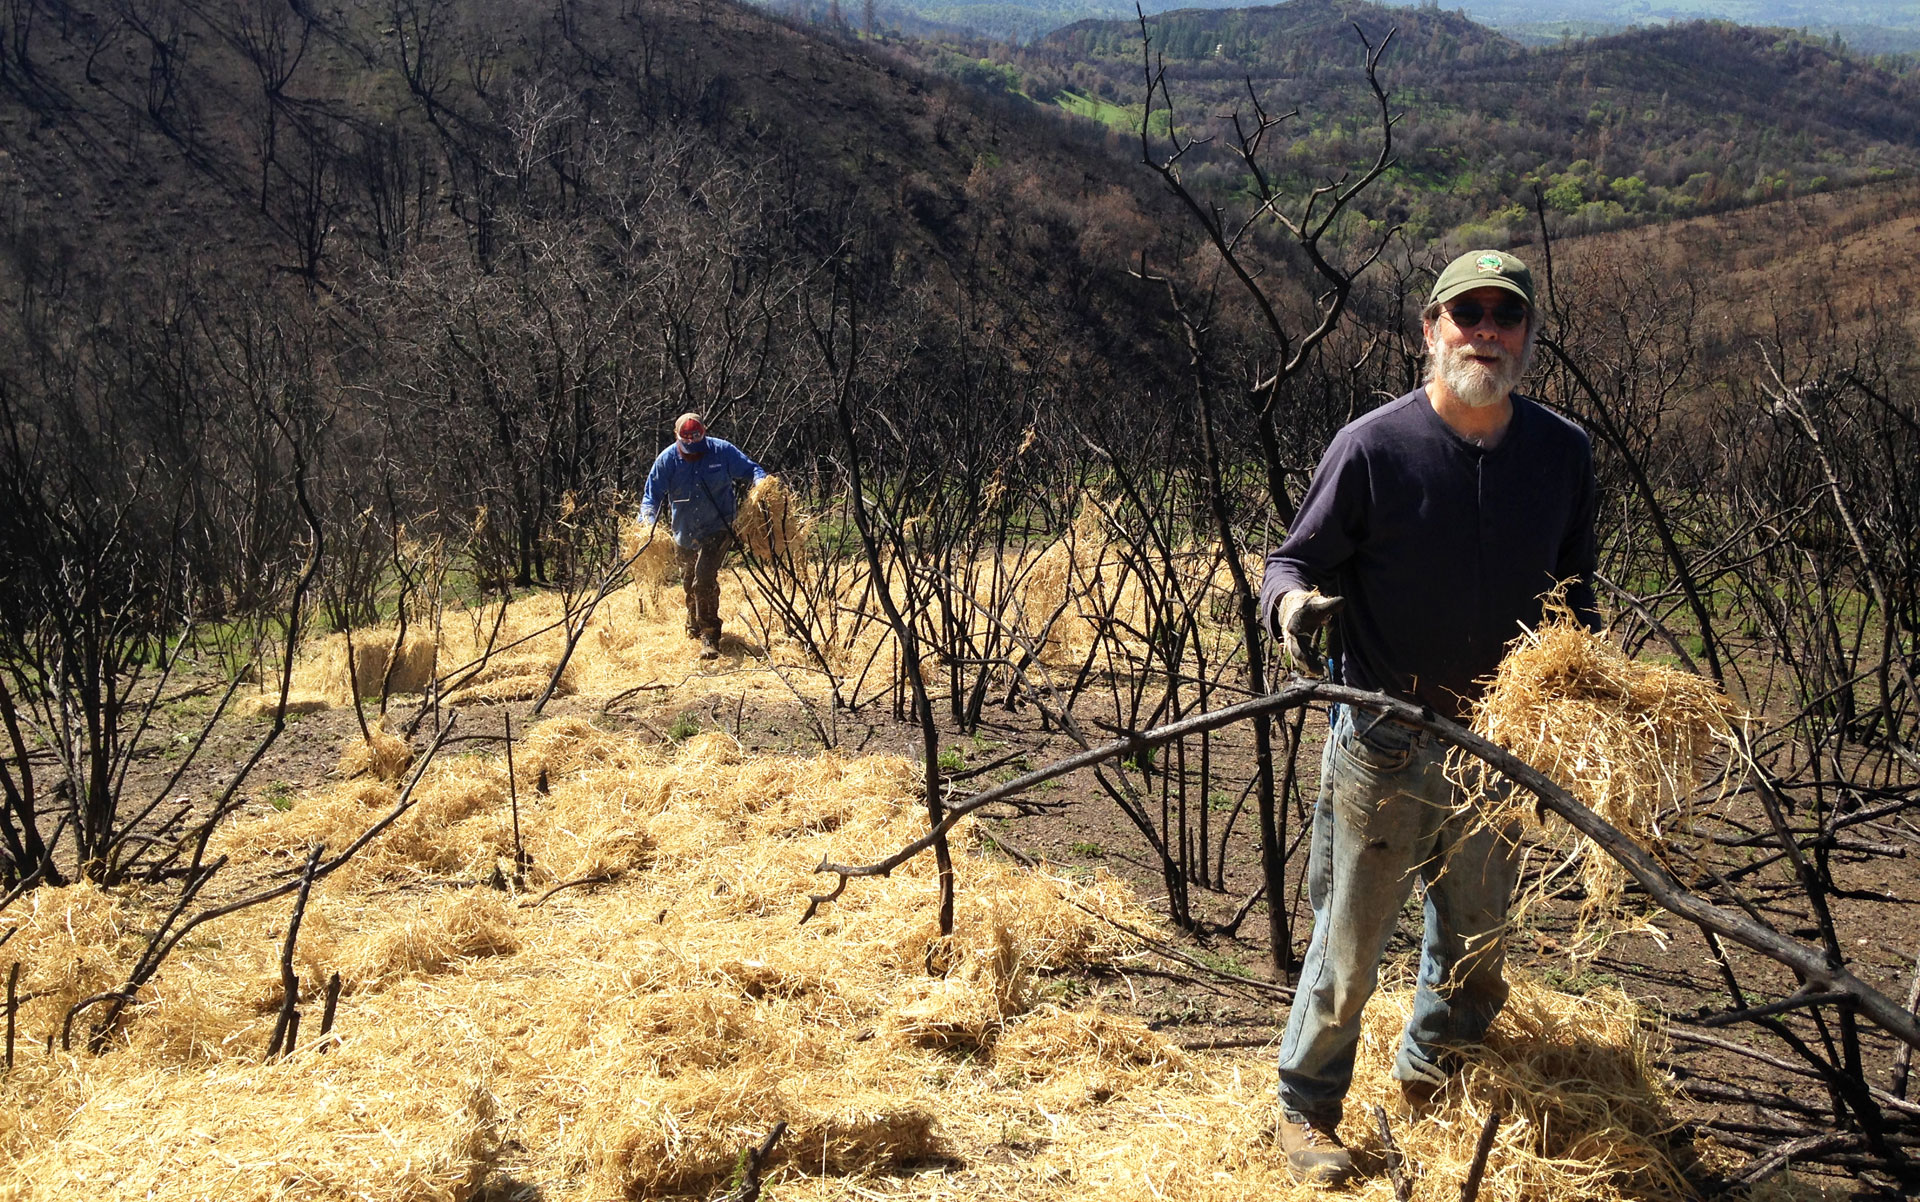 Michael Kriletich and other volunteers with CalaverasGROWN spread straw on scorched hills for erosion control.